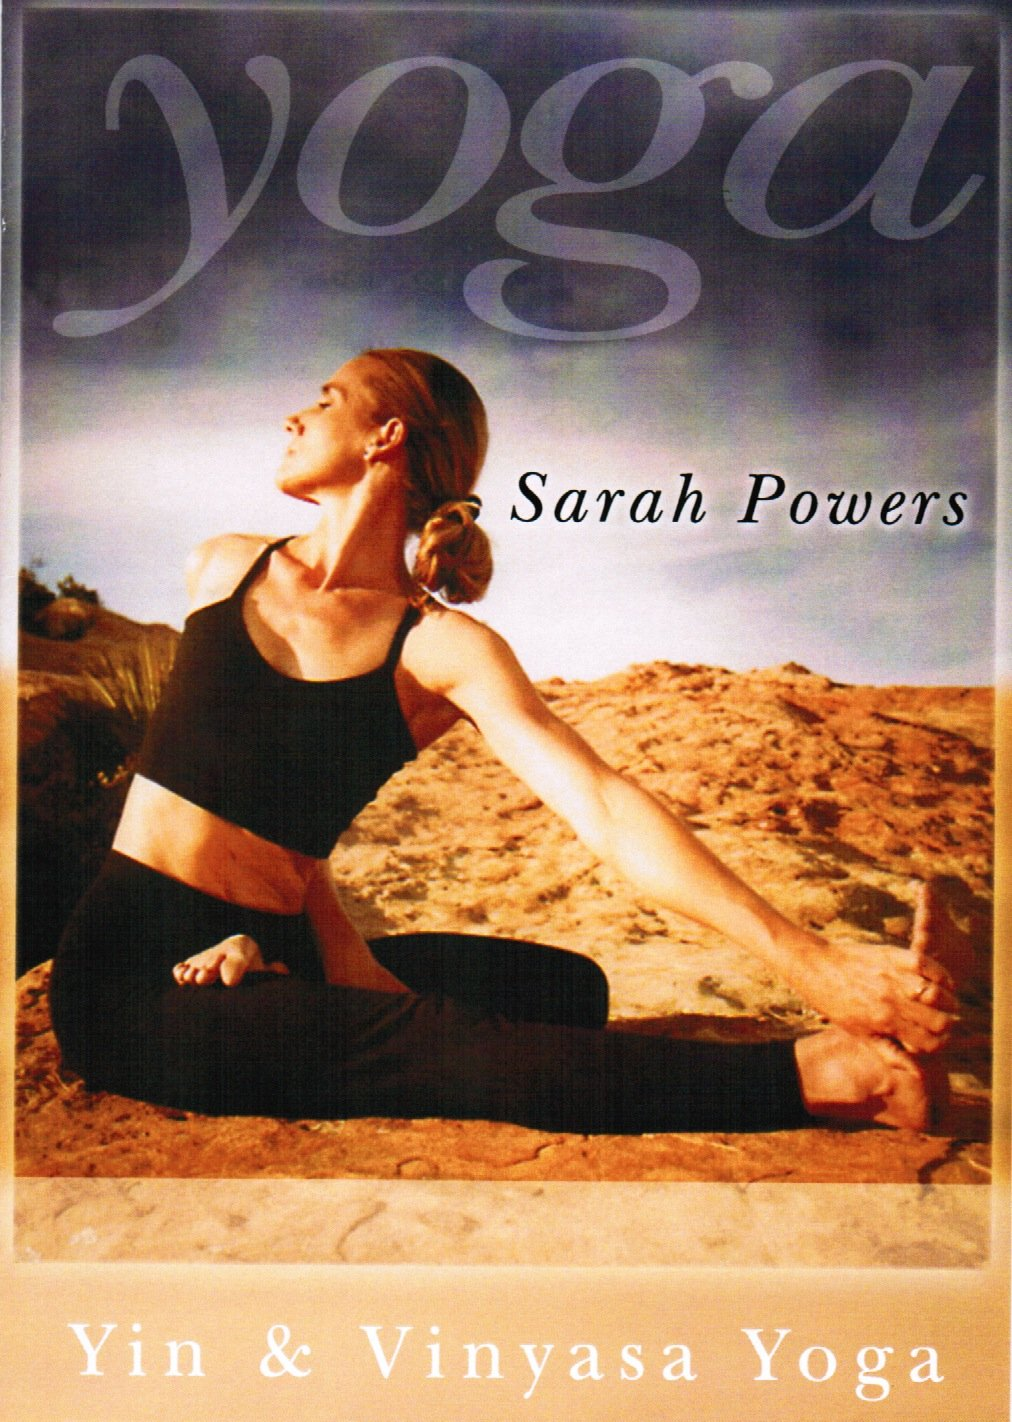 Amazon.com: Yin & Vinyasa Yoga: Sarah Powers: Movies & TV